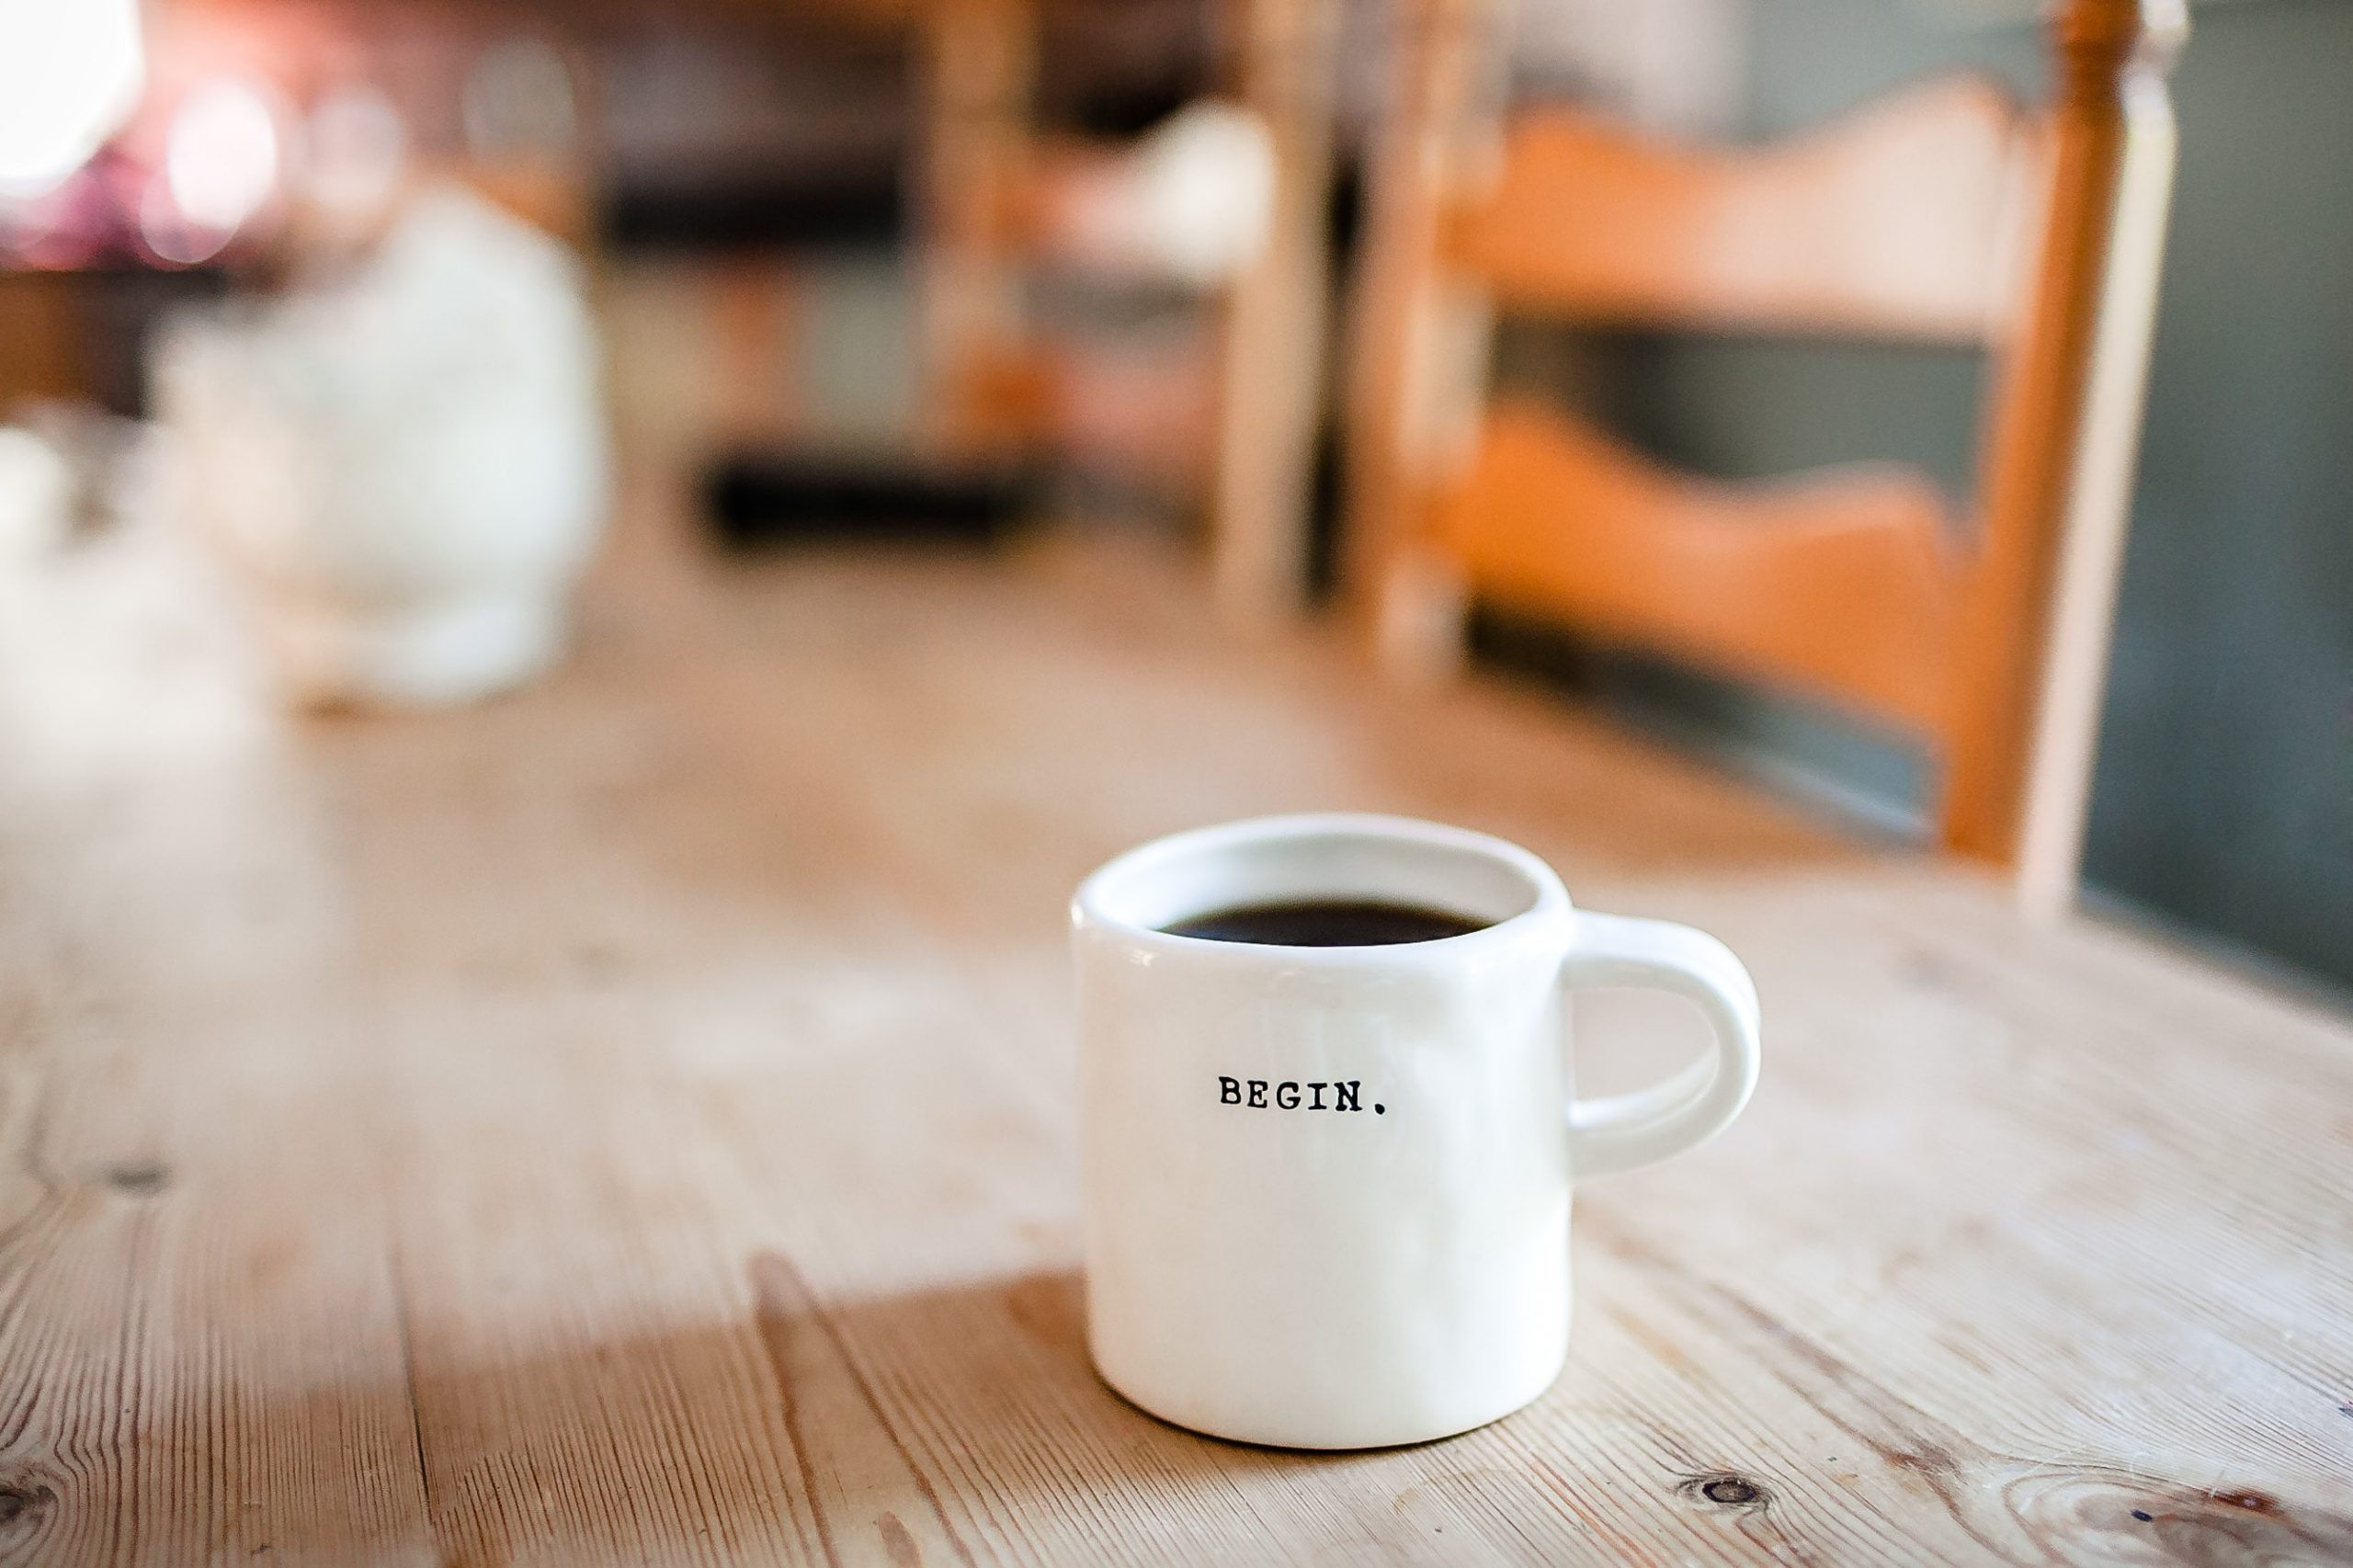 Coffee is a great way to begin.